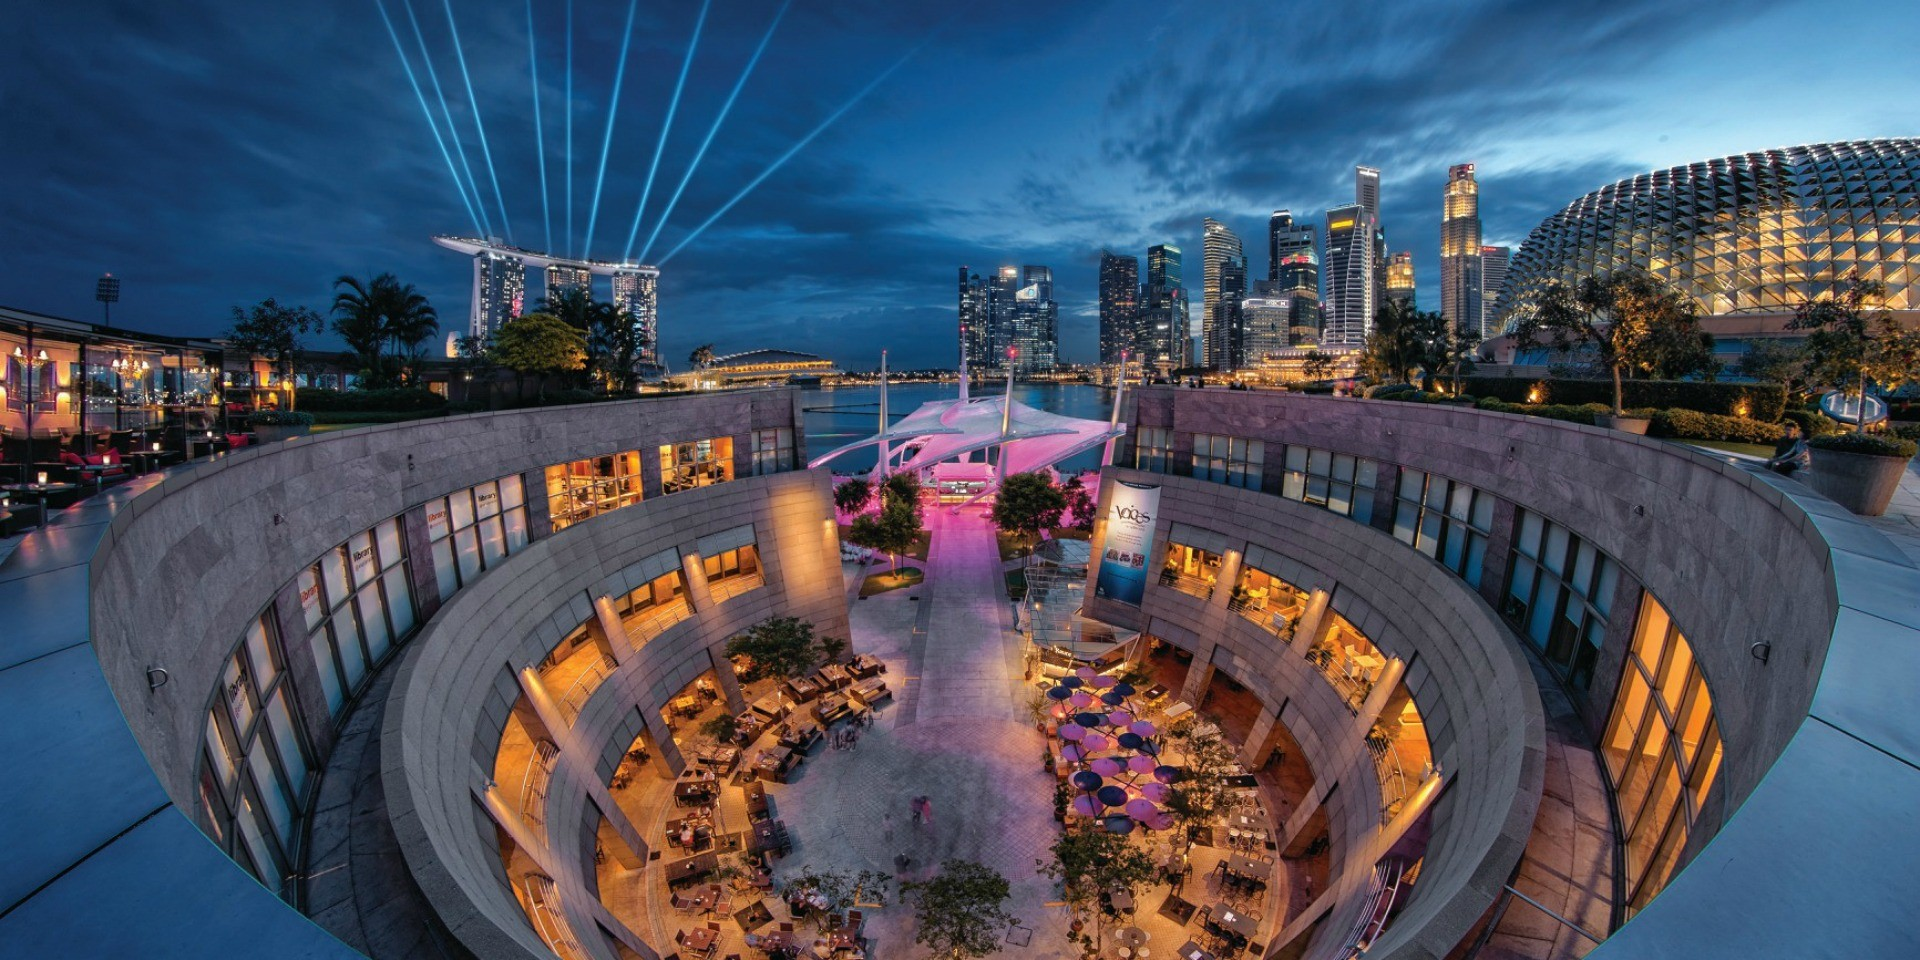 Venues and dates announced for trial resumption of live performances in Singapore